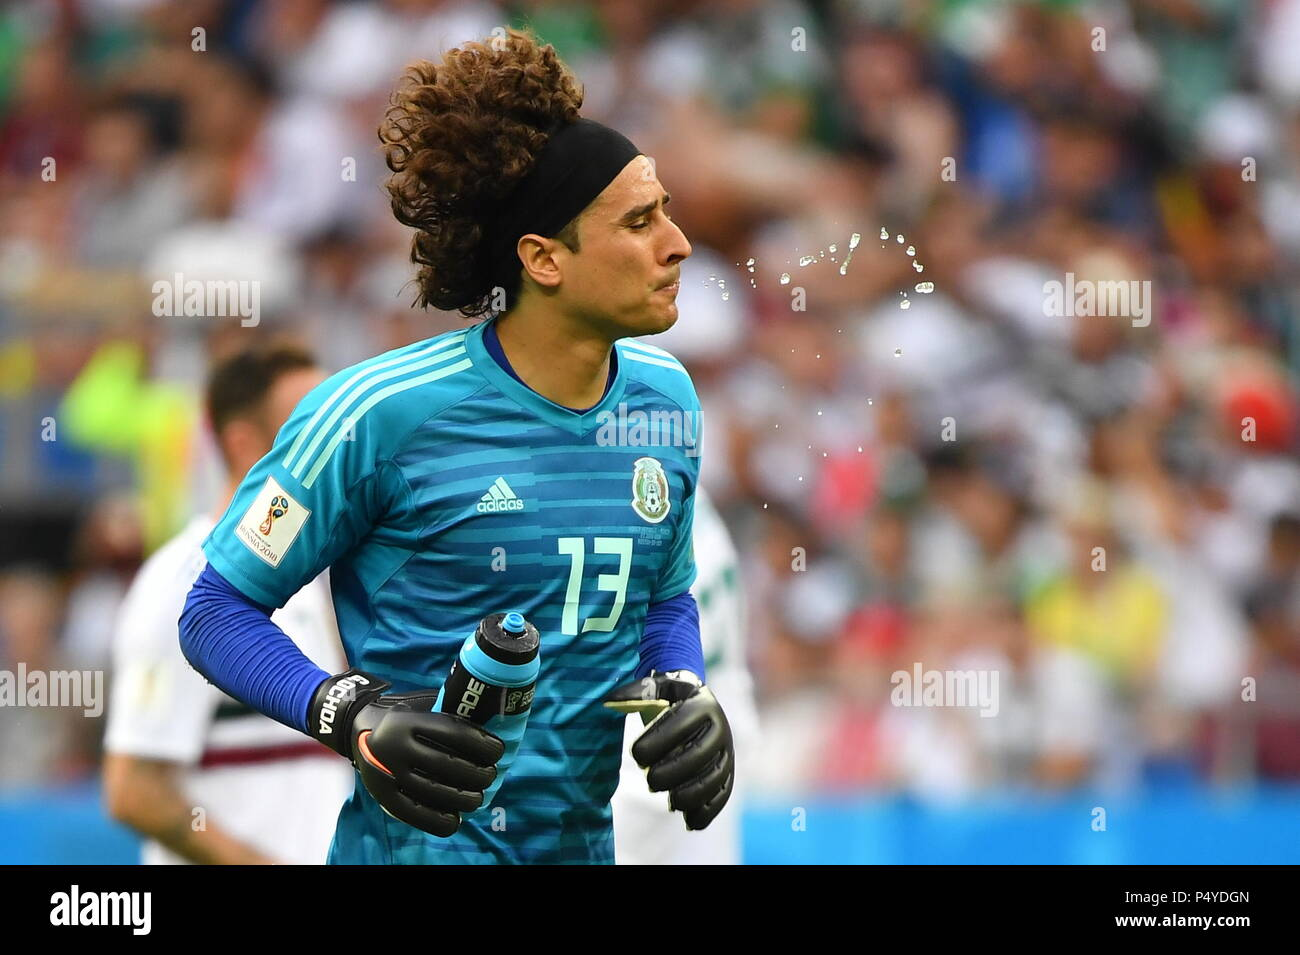 b032aa14286 23rd June, 2018. Goalkeeper Guillermo Ochoa of Mexico reacts during the 2018  FIFA World Cup Group F match between South Korea and Mexico in  Rostov-on-Don, ...